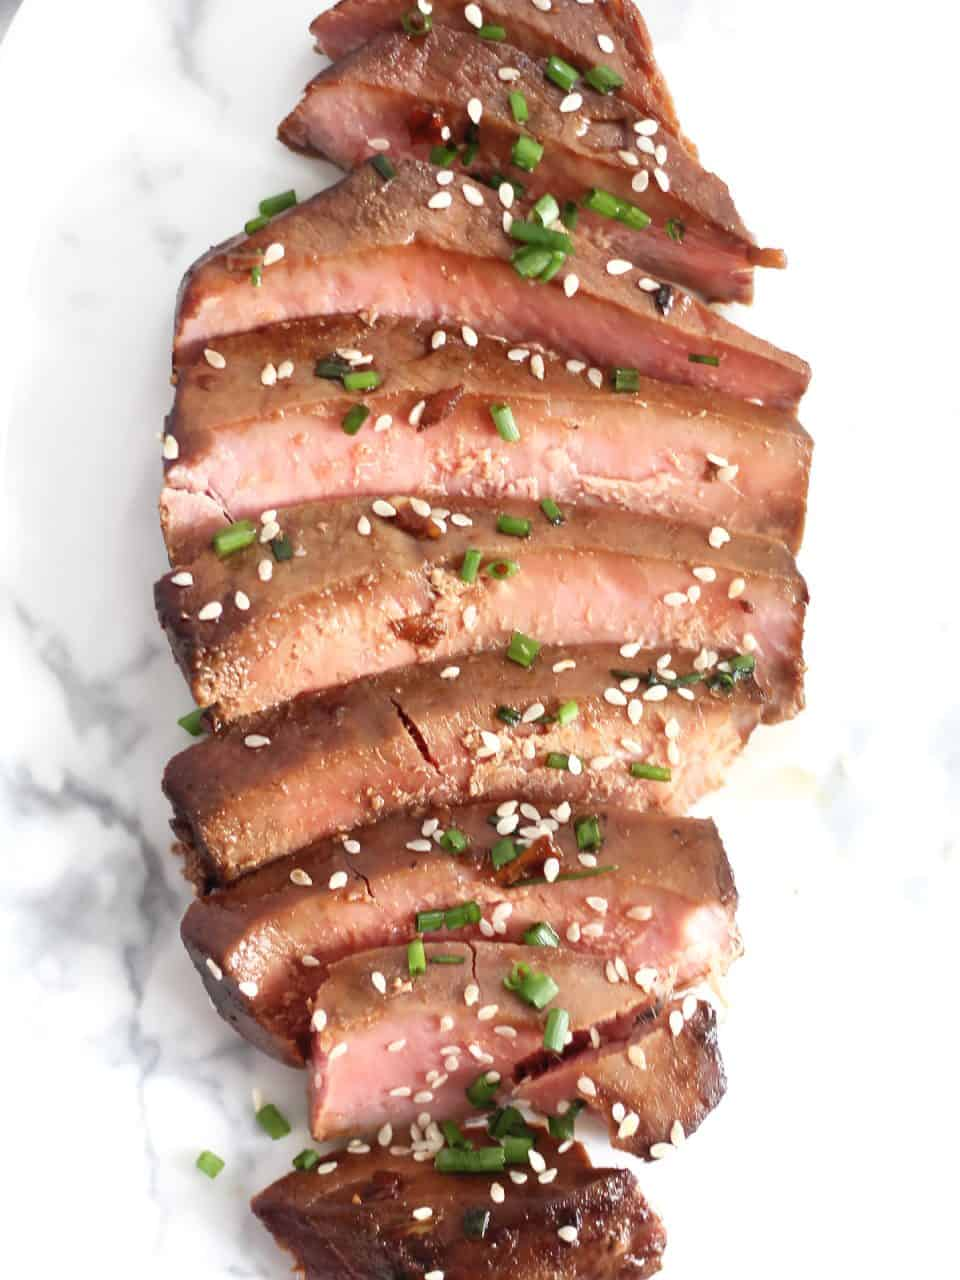 An air fryer tuna steak sliced into pieces and garnished.